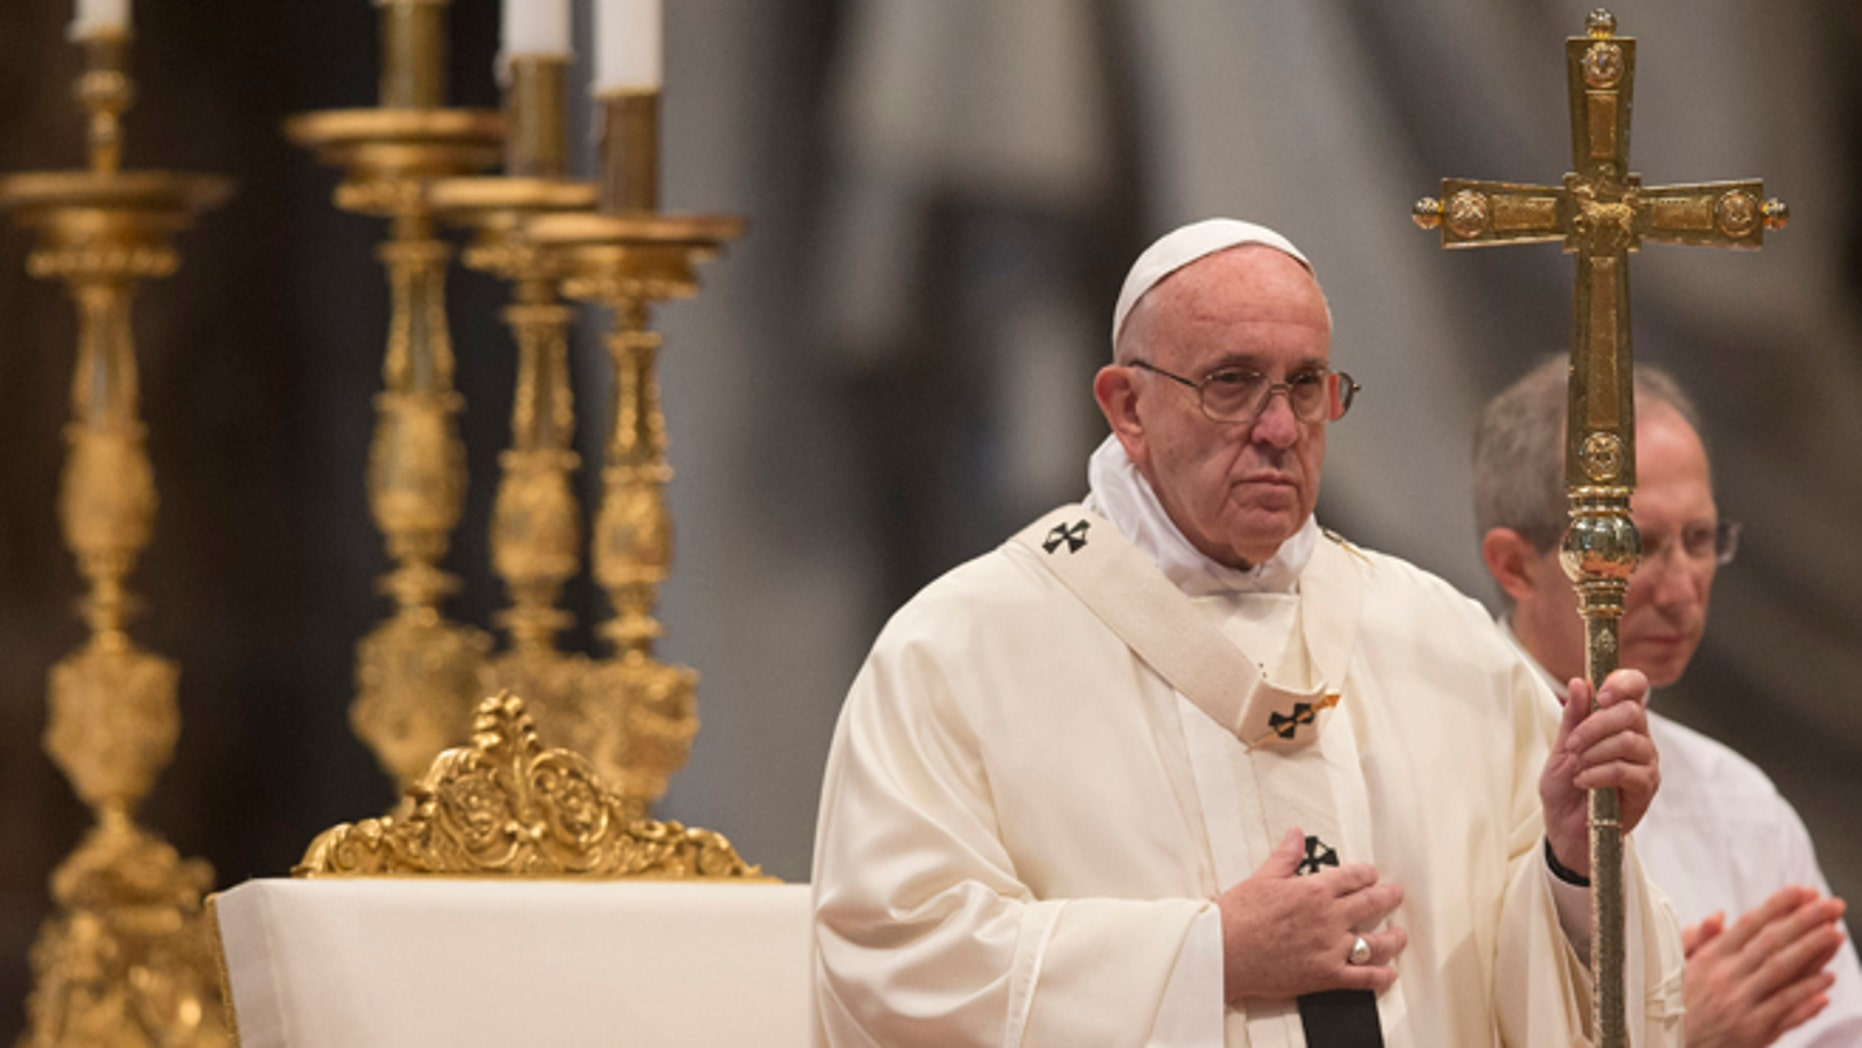 Pope Francis holds the pastoral staff as he celebrates a Mass for families in St.Peter's Basilica at the Vatican, Sunday, Dec. 27, 2015. (AP Photo/Alessandra Tarantino)